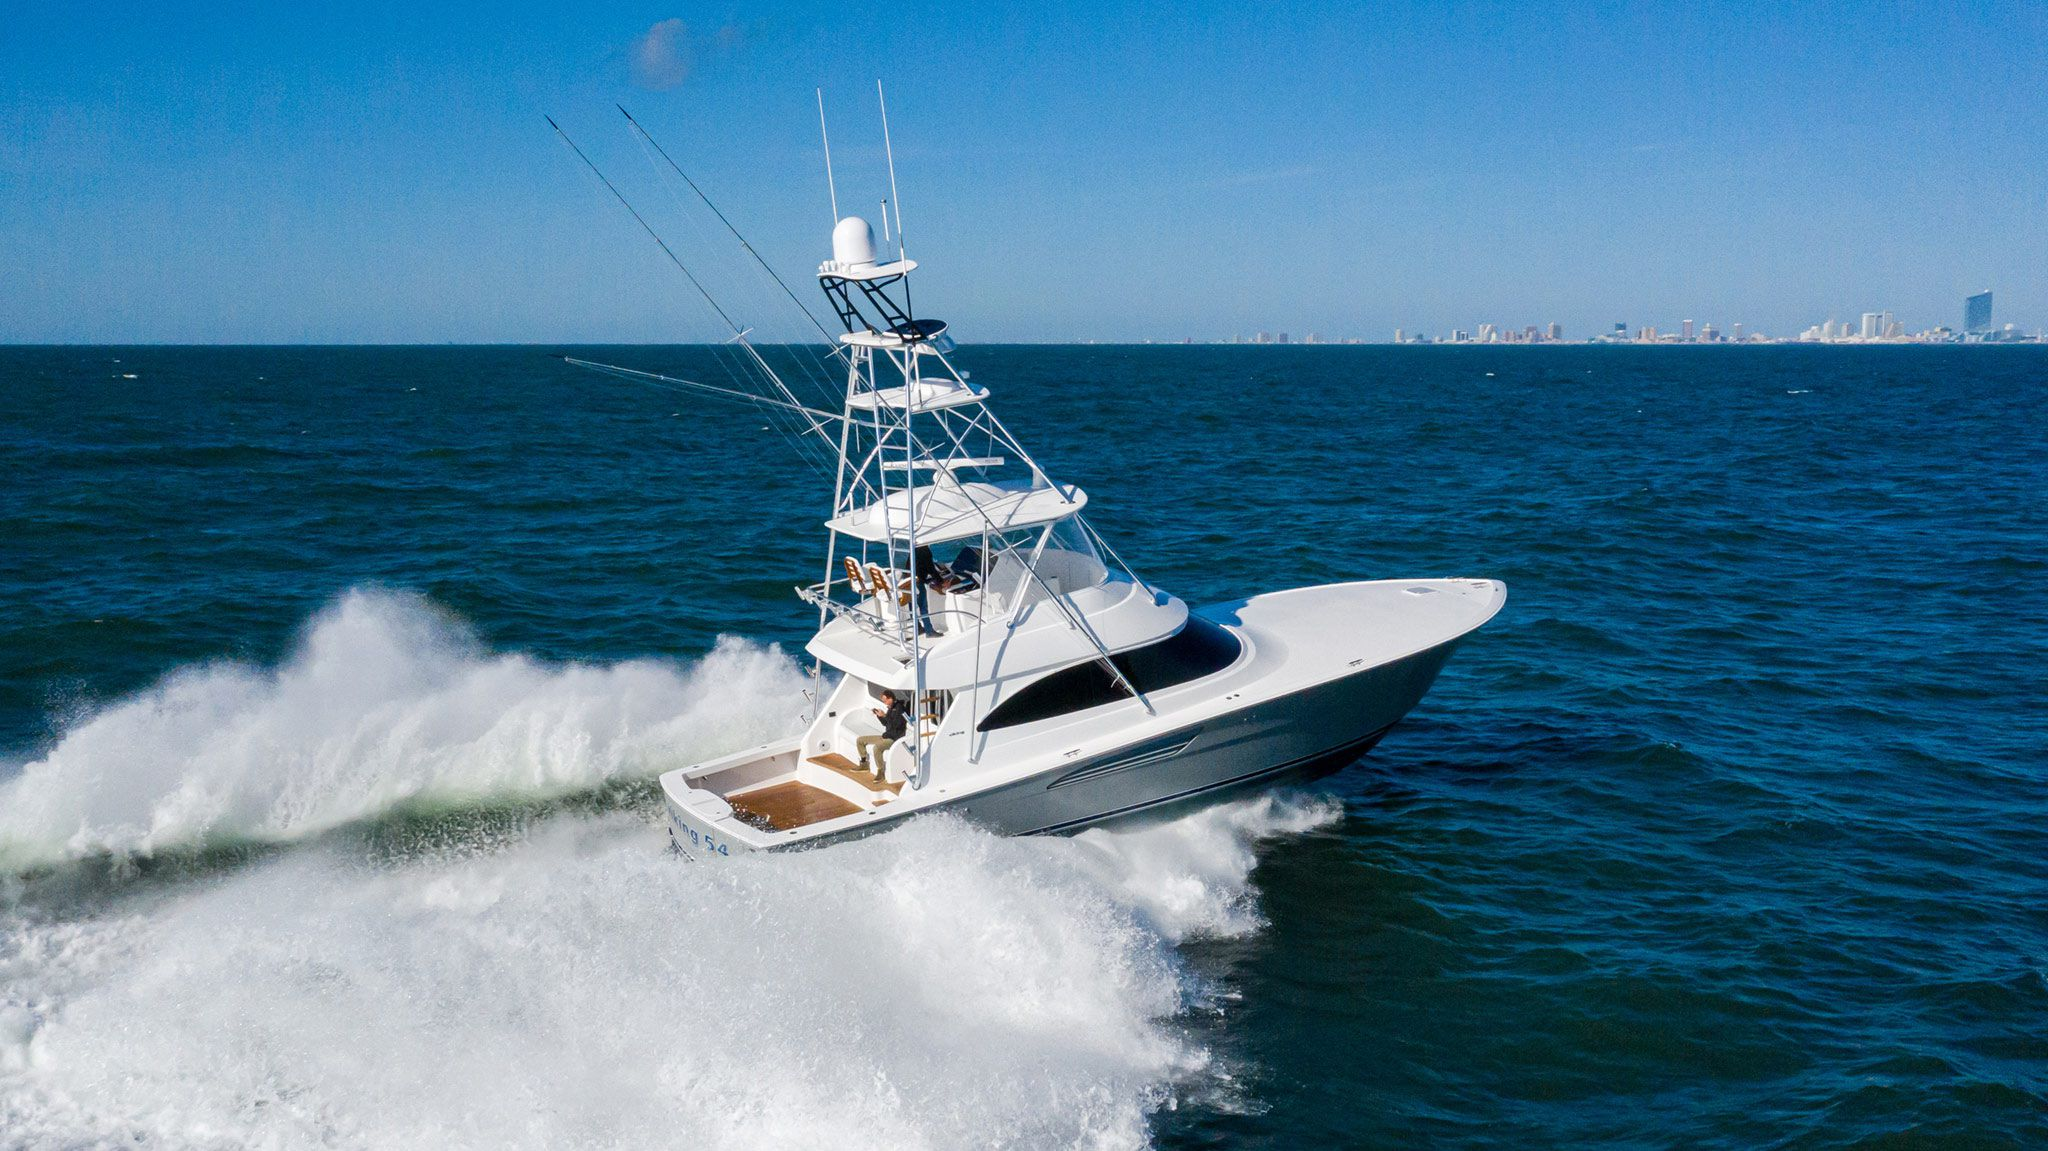 The Viking 54 Convertible is a three-stateroom, two-head, open-bridge sportfishing yacht with a 154-square-foot cockpit. With twin 1,550 hp MAN diesels, the builder reports a mid-30-knot cruise speed and 40-knot-plus top-end speed.